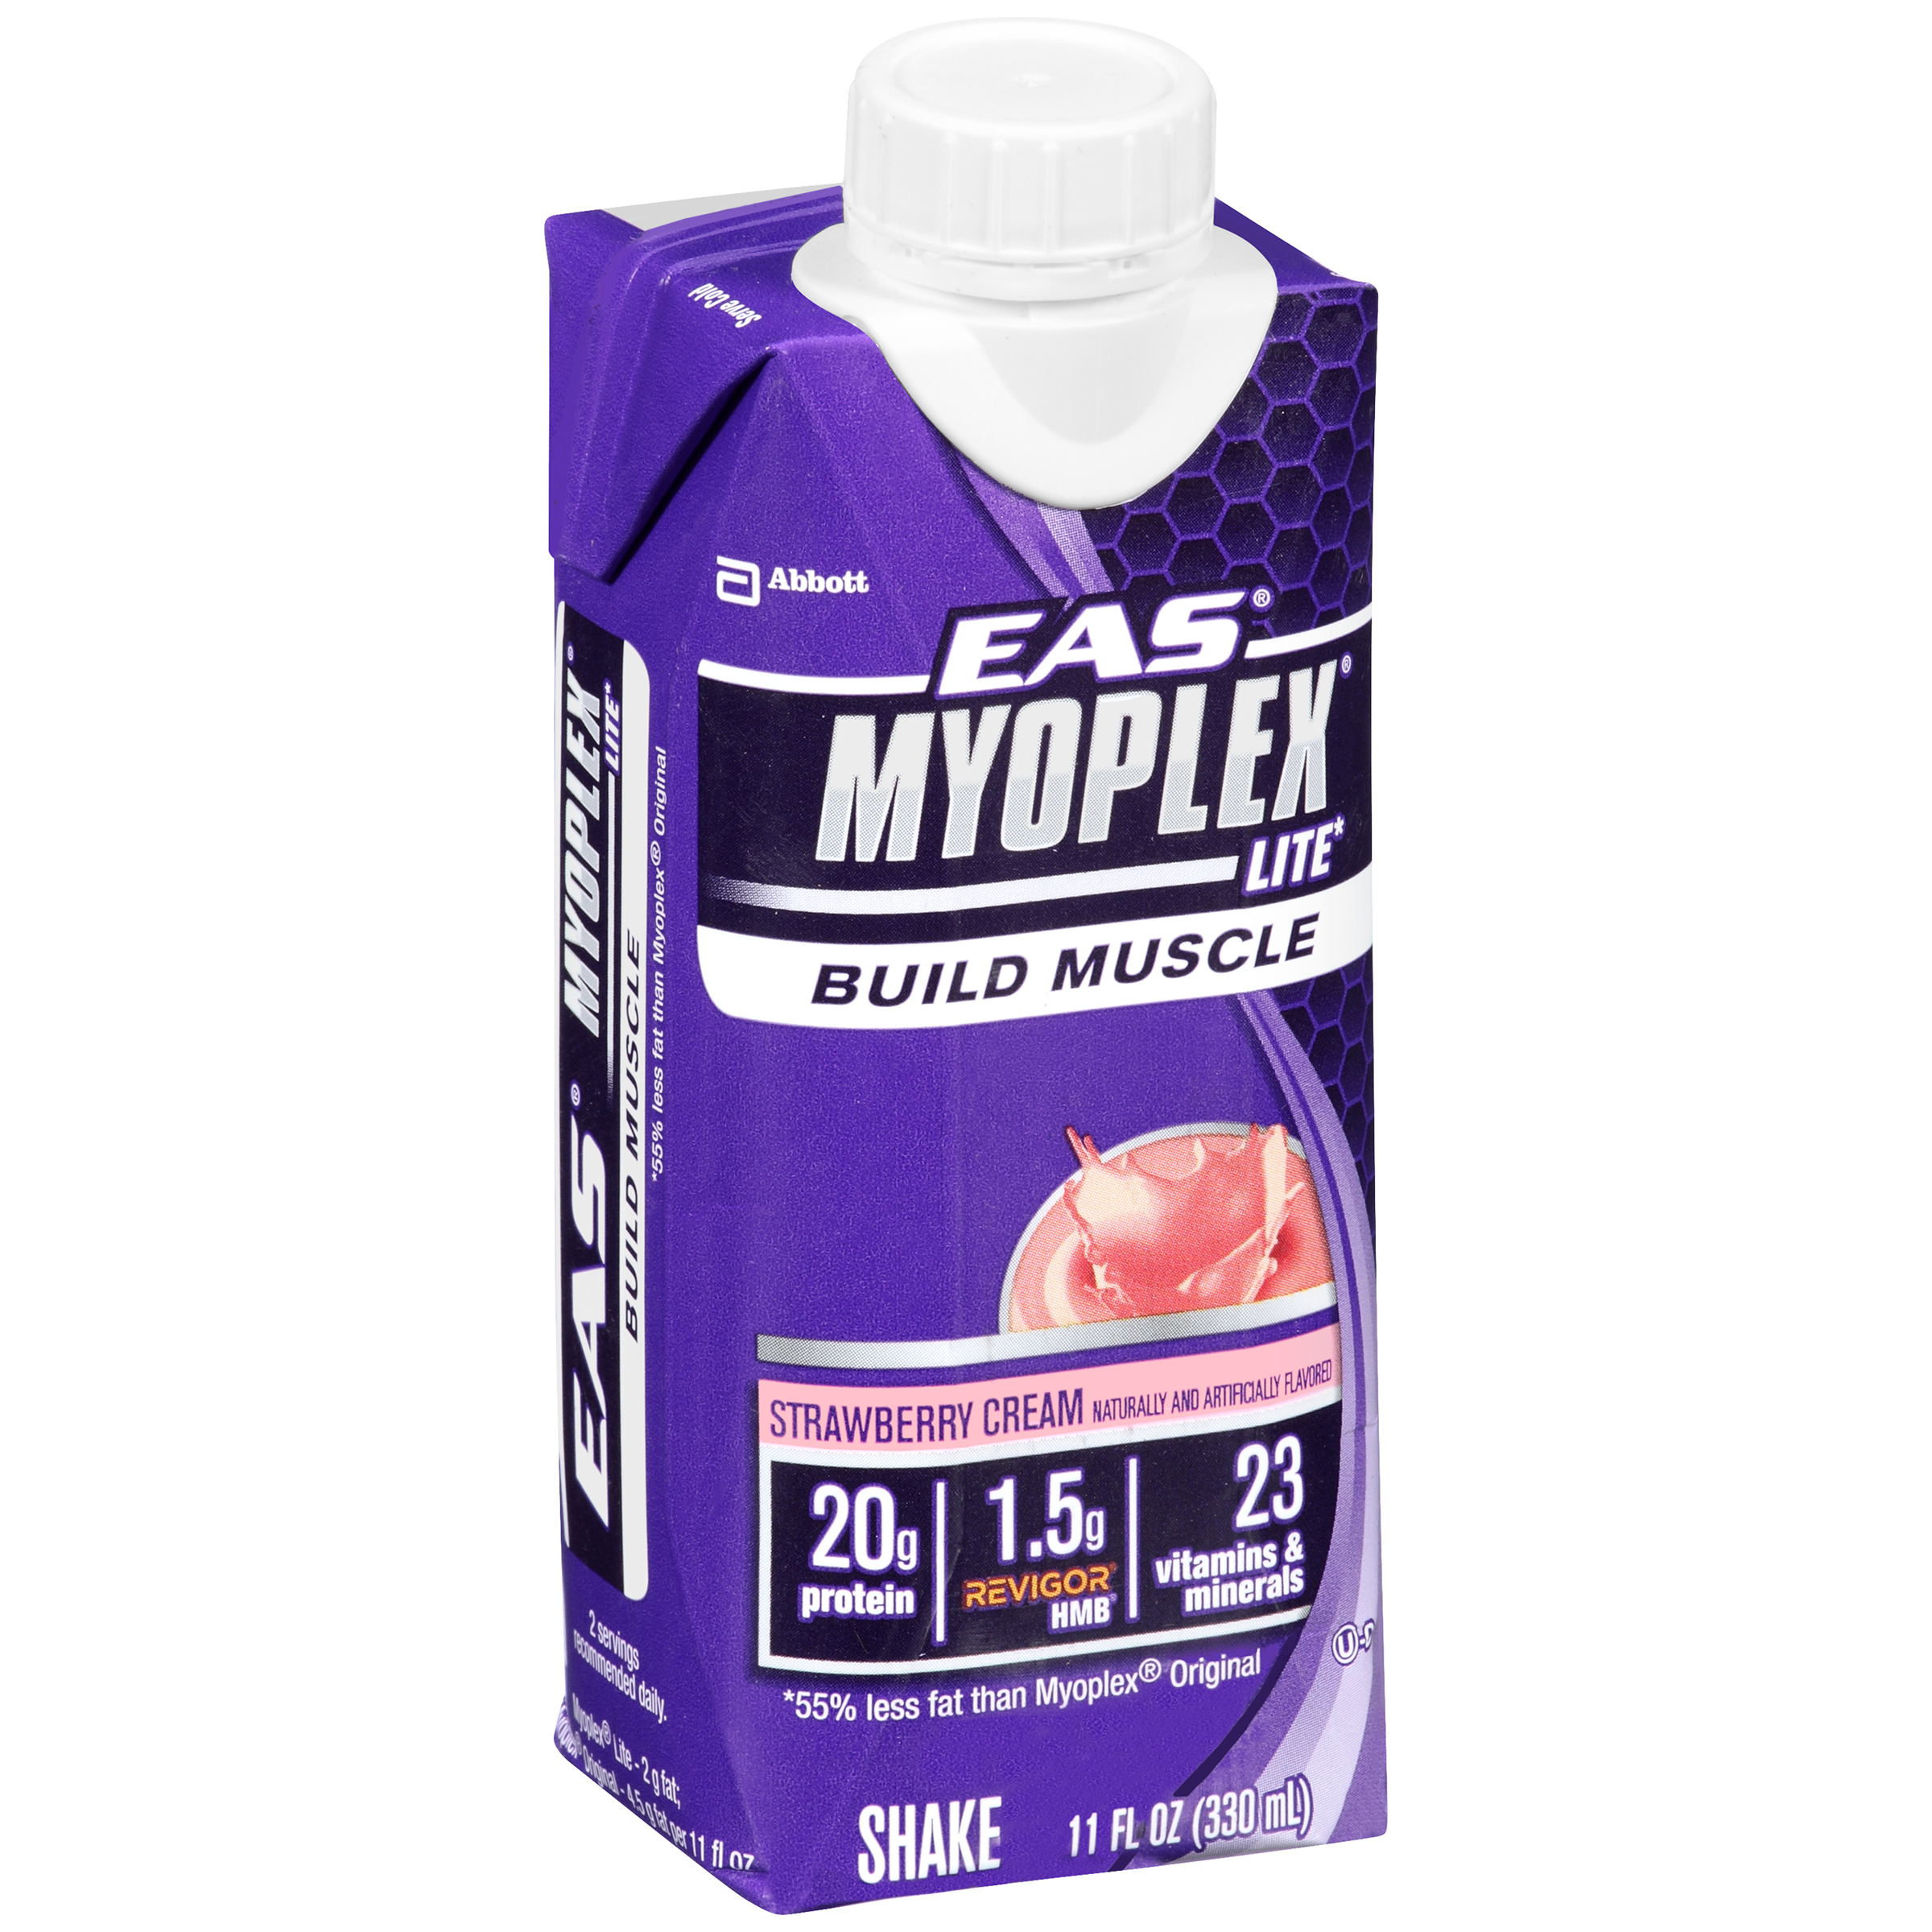 EAS® Myoplex® Lite Dietary Supplement Strawberry Cream  Nutrition Shake 11 fl. oz. Aseptic Carton